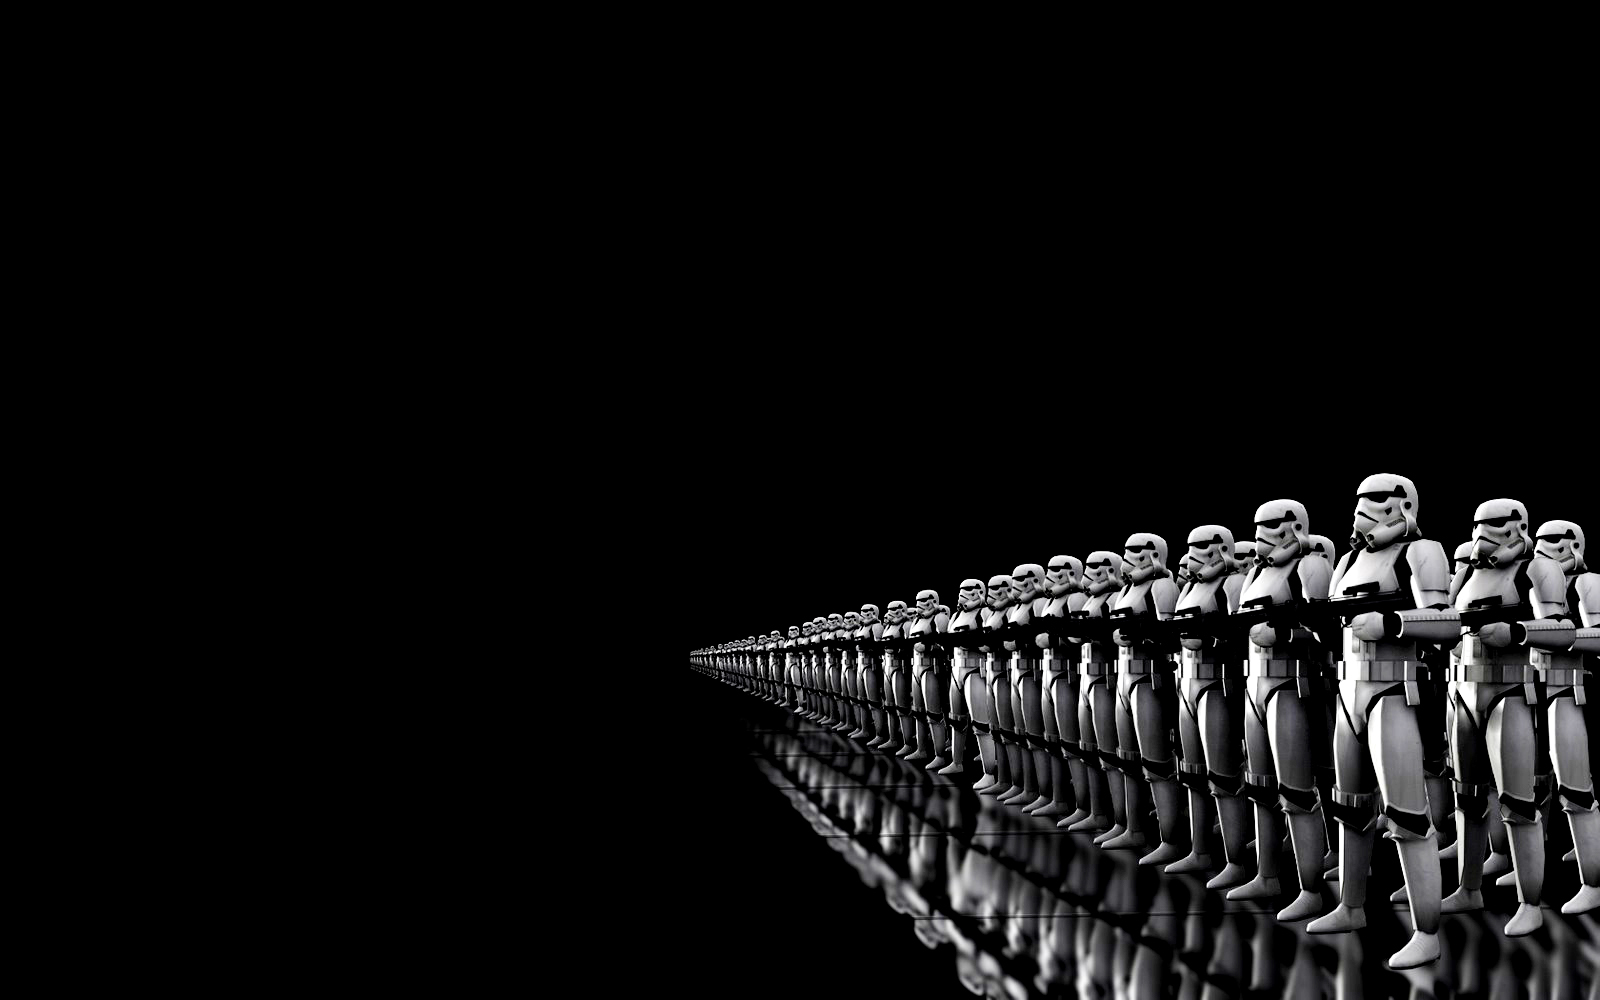 Central wallpaper stormtroopers star wars hd wallpapers - Star wars wallpaper ...